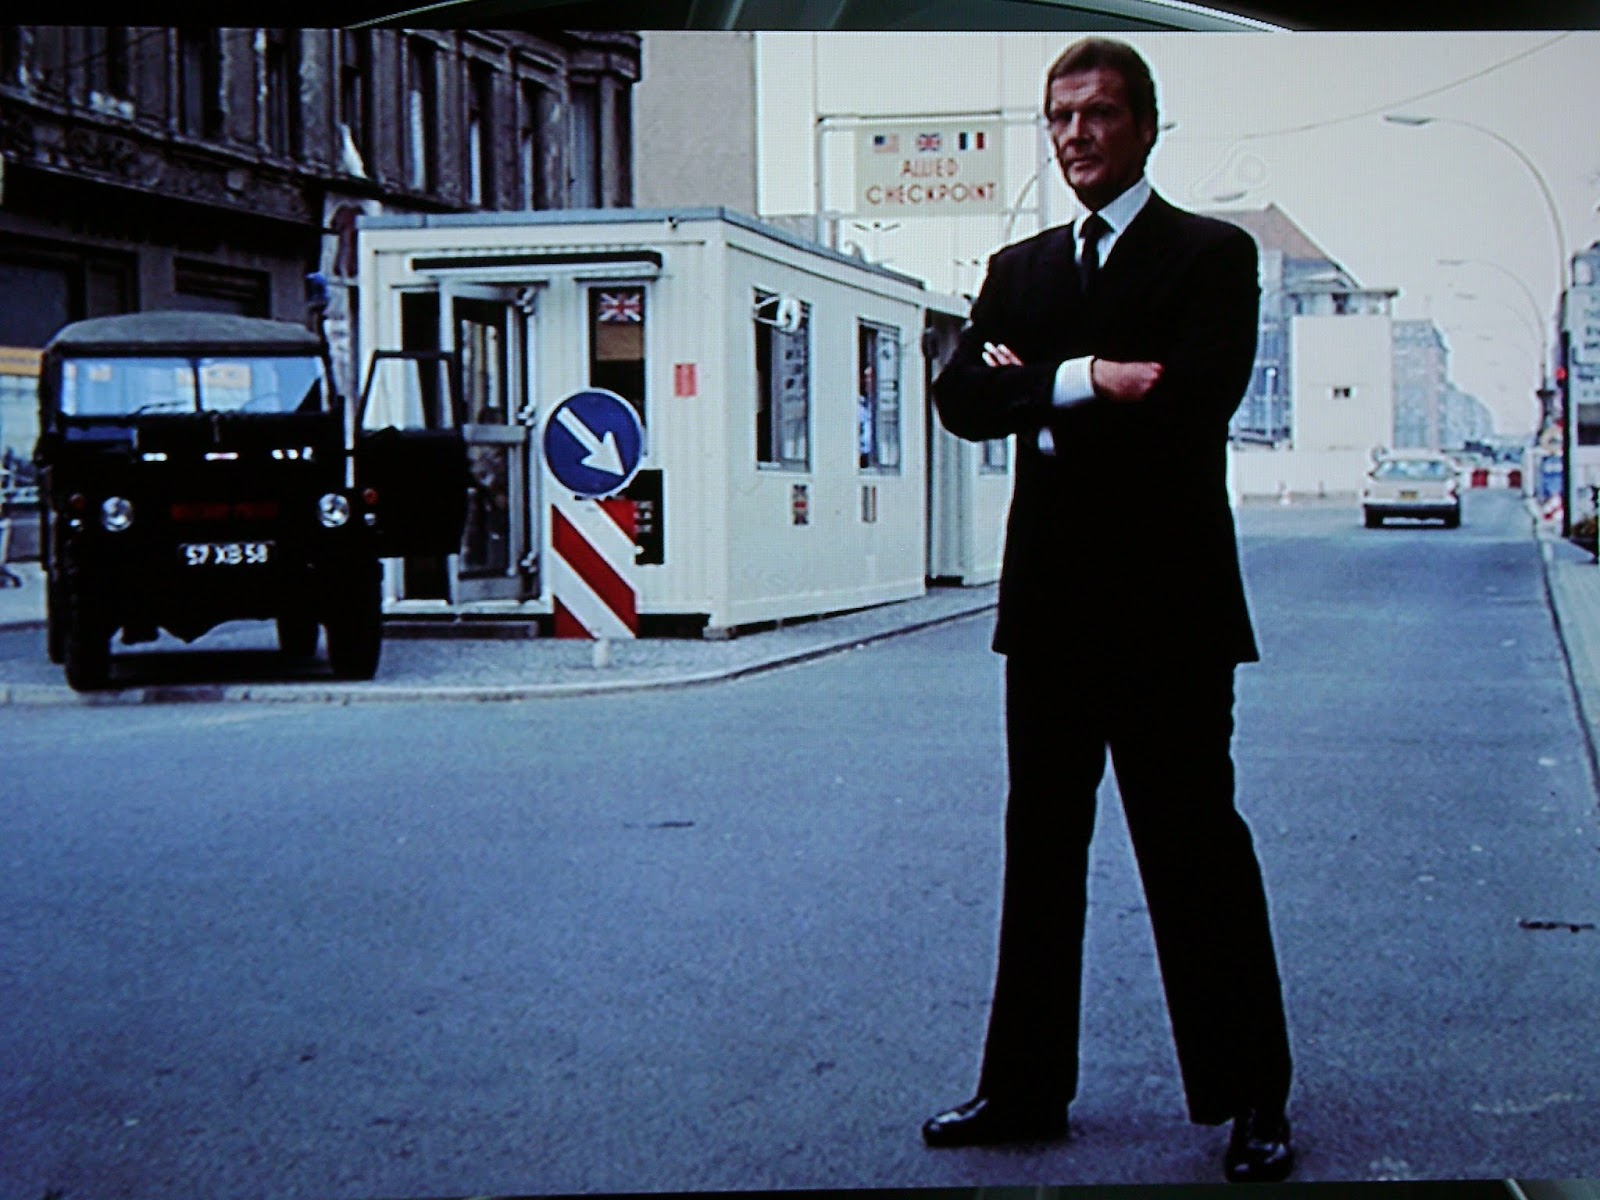 BERLIN - Berlinale James Bond OCTOPUSSY at Checkpoint Charlie 1983 - Go with the Blog